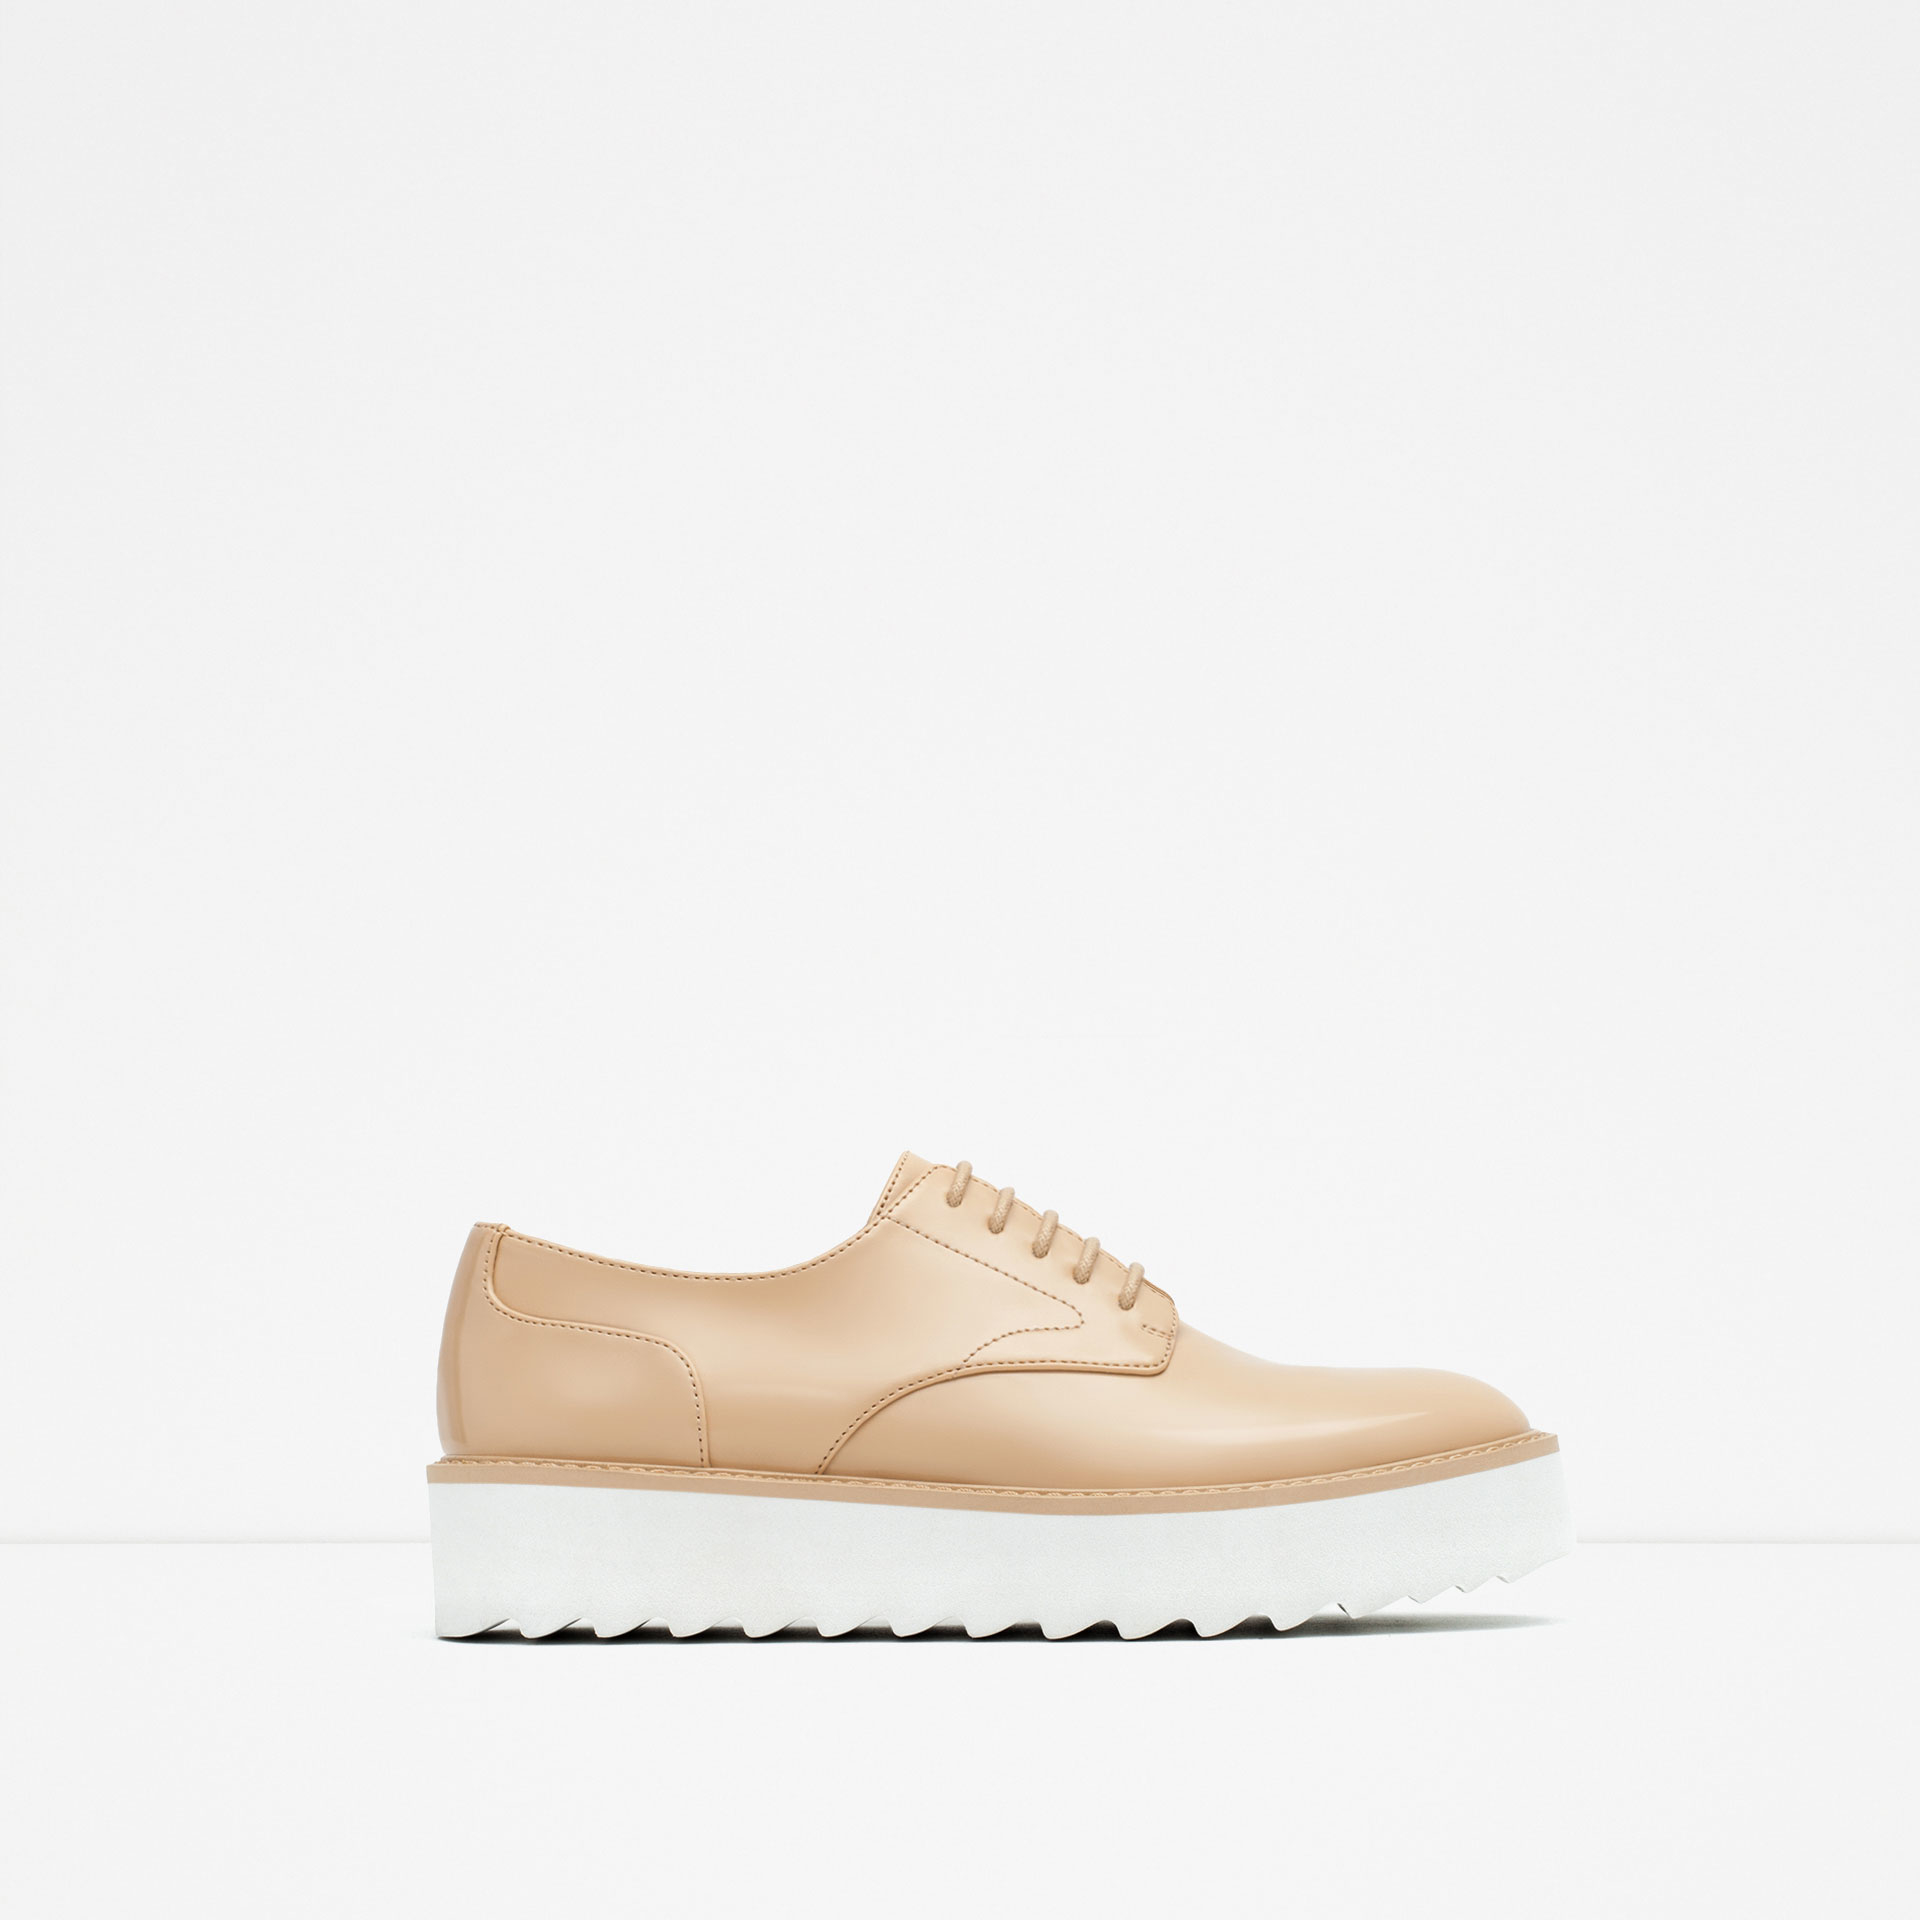 Zara Flat Platform Lace-Up Shoes in Natural | Lyst